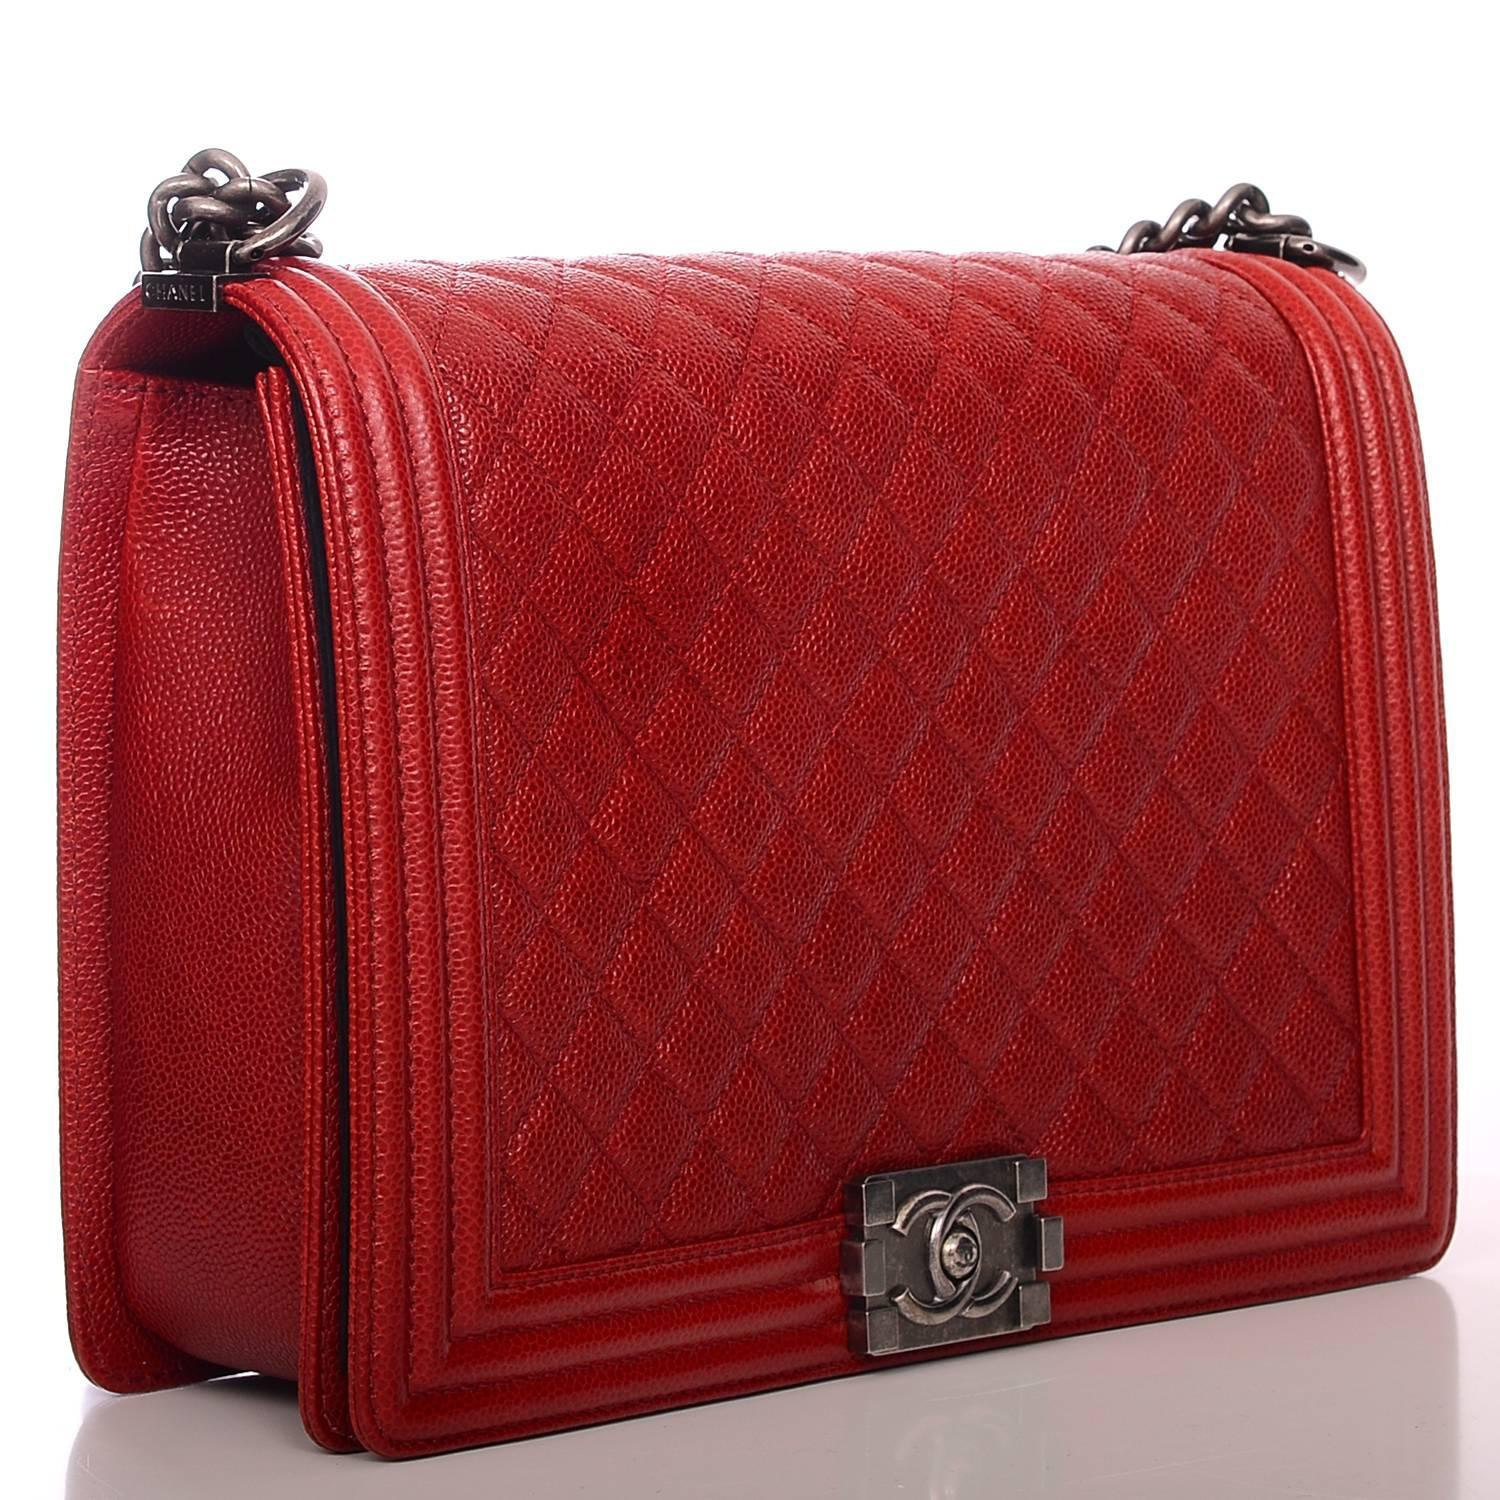 Chanel Dark Red Quilted Caviar Large Boy Bag at 1stdibs Chanel Boy Bag Red 2013